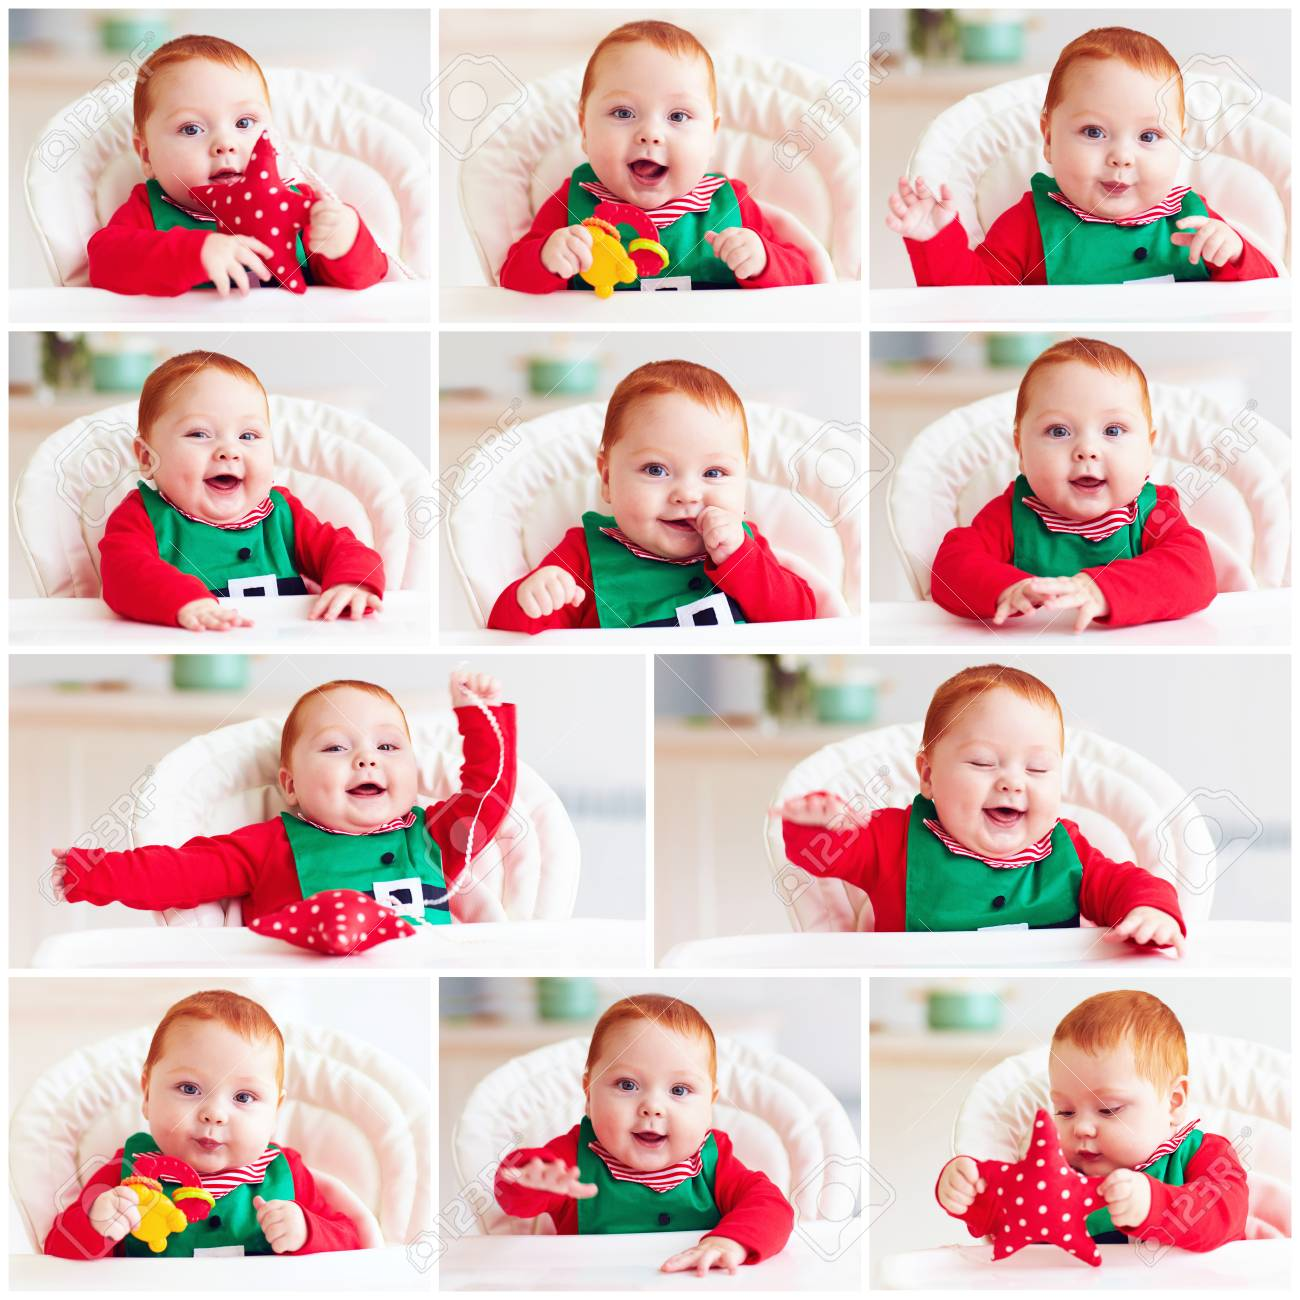 set of cute happy infant baby boy in elf costume sitting in highchair Stock Photo -  sc 1 st  123RF.com & Set Of Cute Happy Infant Baby Boy In Elf Costume Sitting In ...